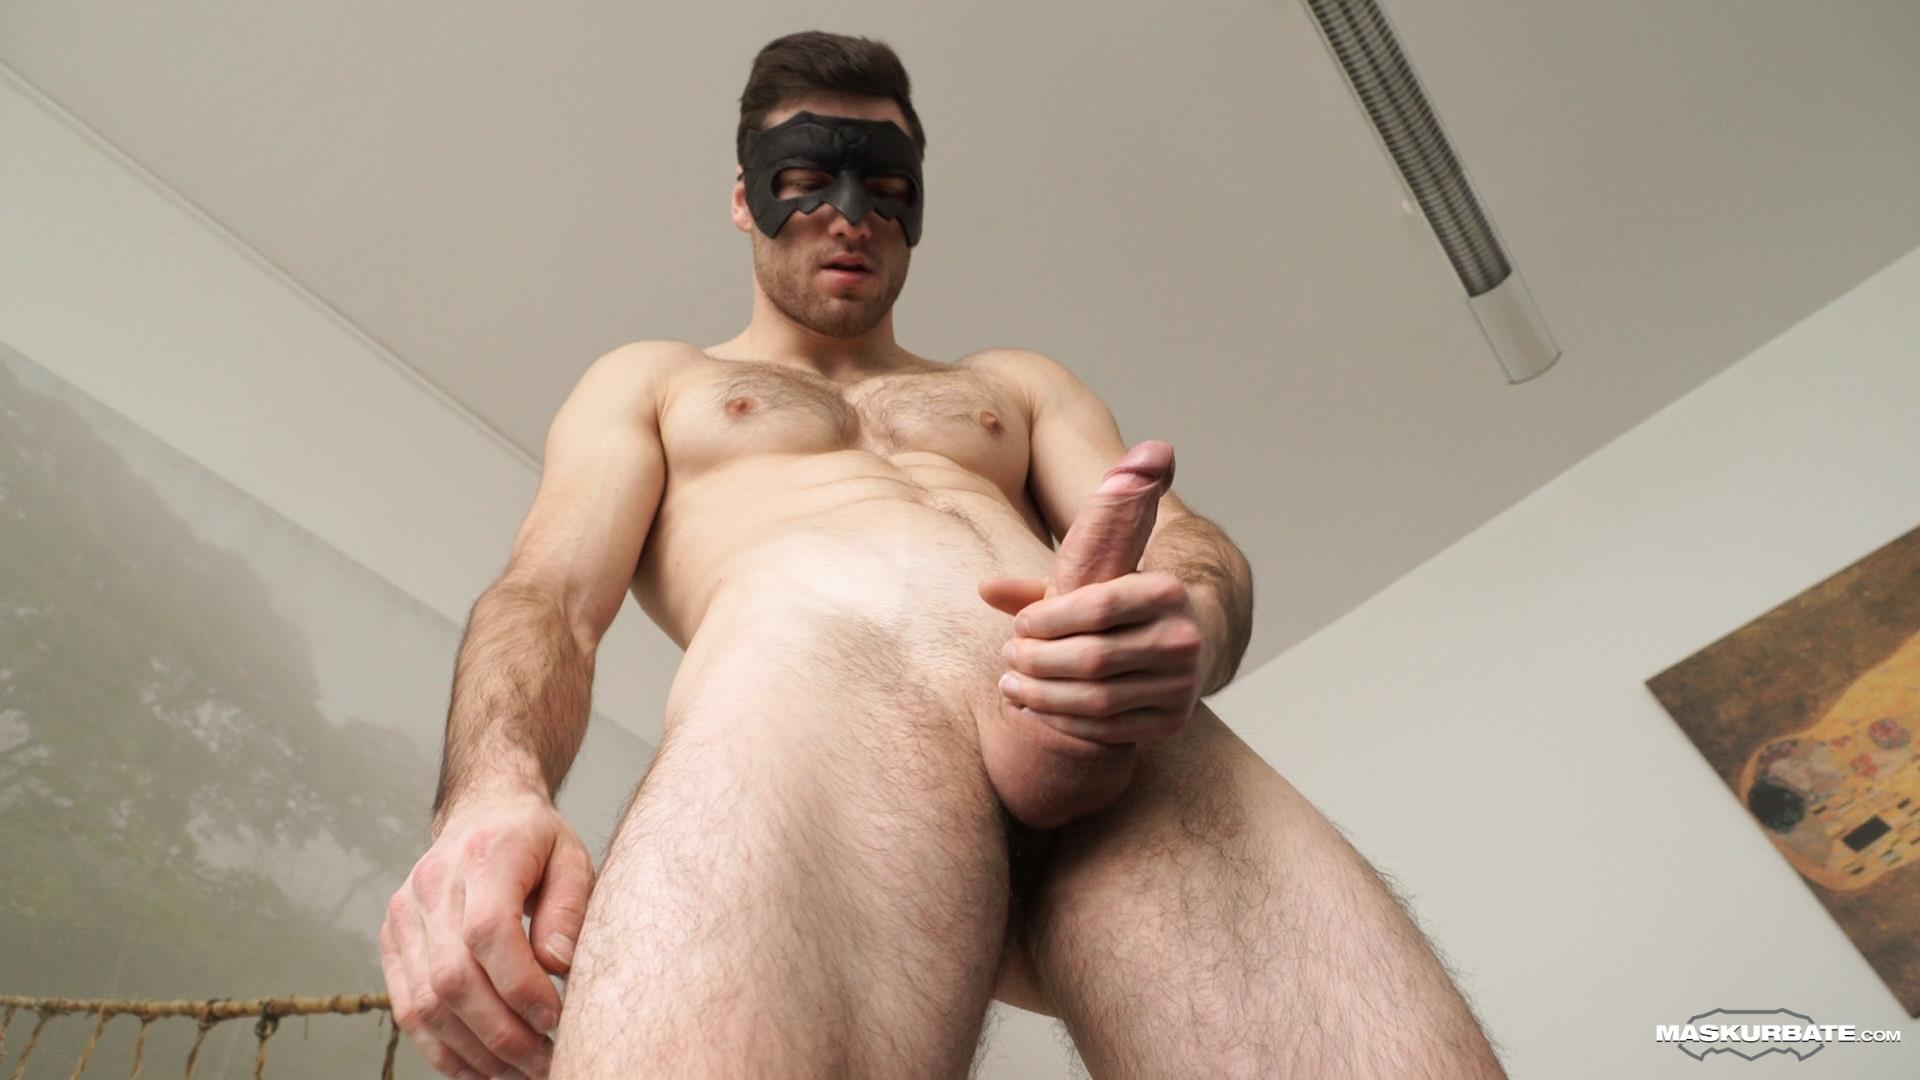 Maskurbate-Sam-Cuthan-Straight-Naked-Hairy-Muscle-Guy-Jerk-off-14 Straight Masked Hairy Muscle Hunk Strokes His Big Uncut Cock